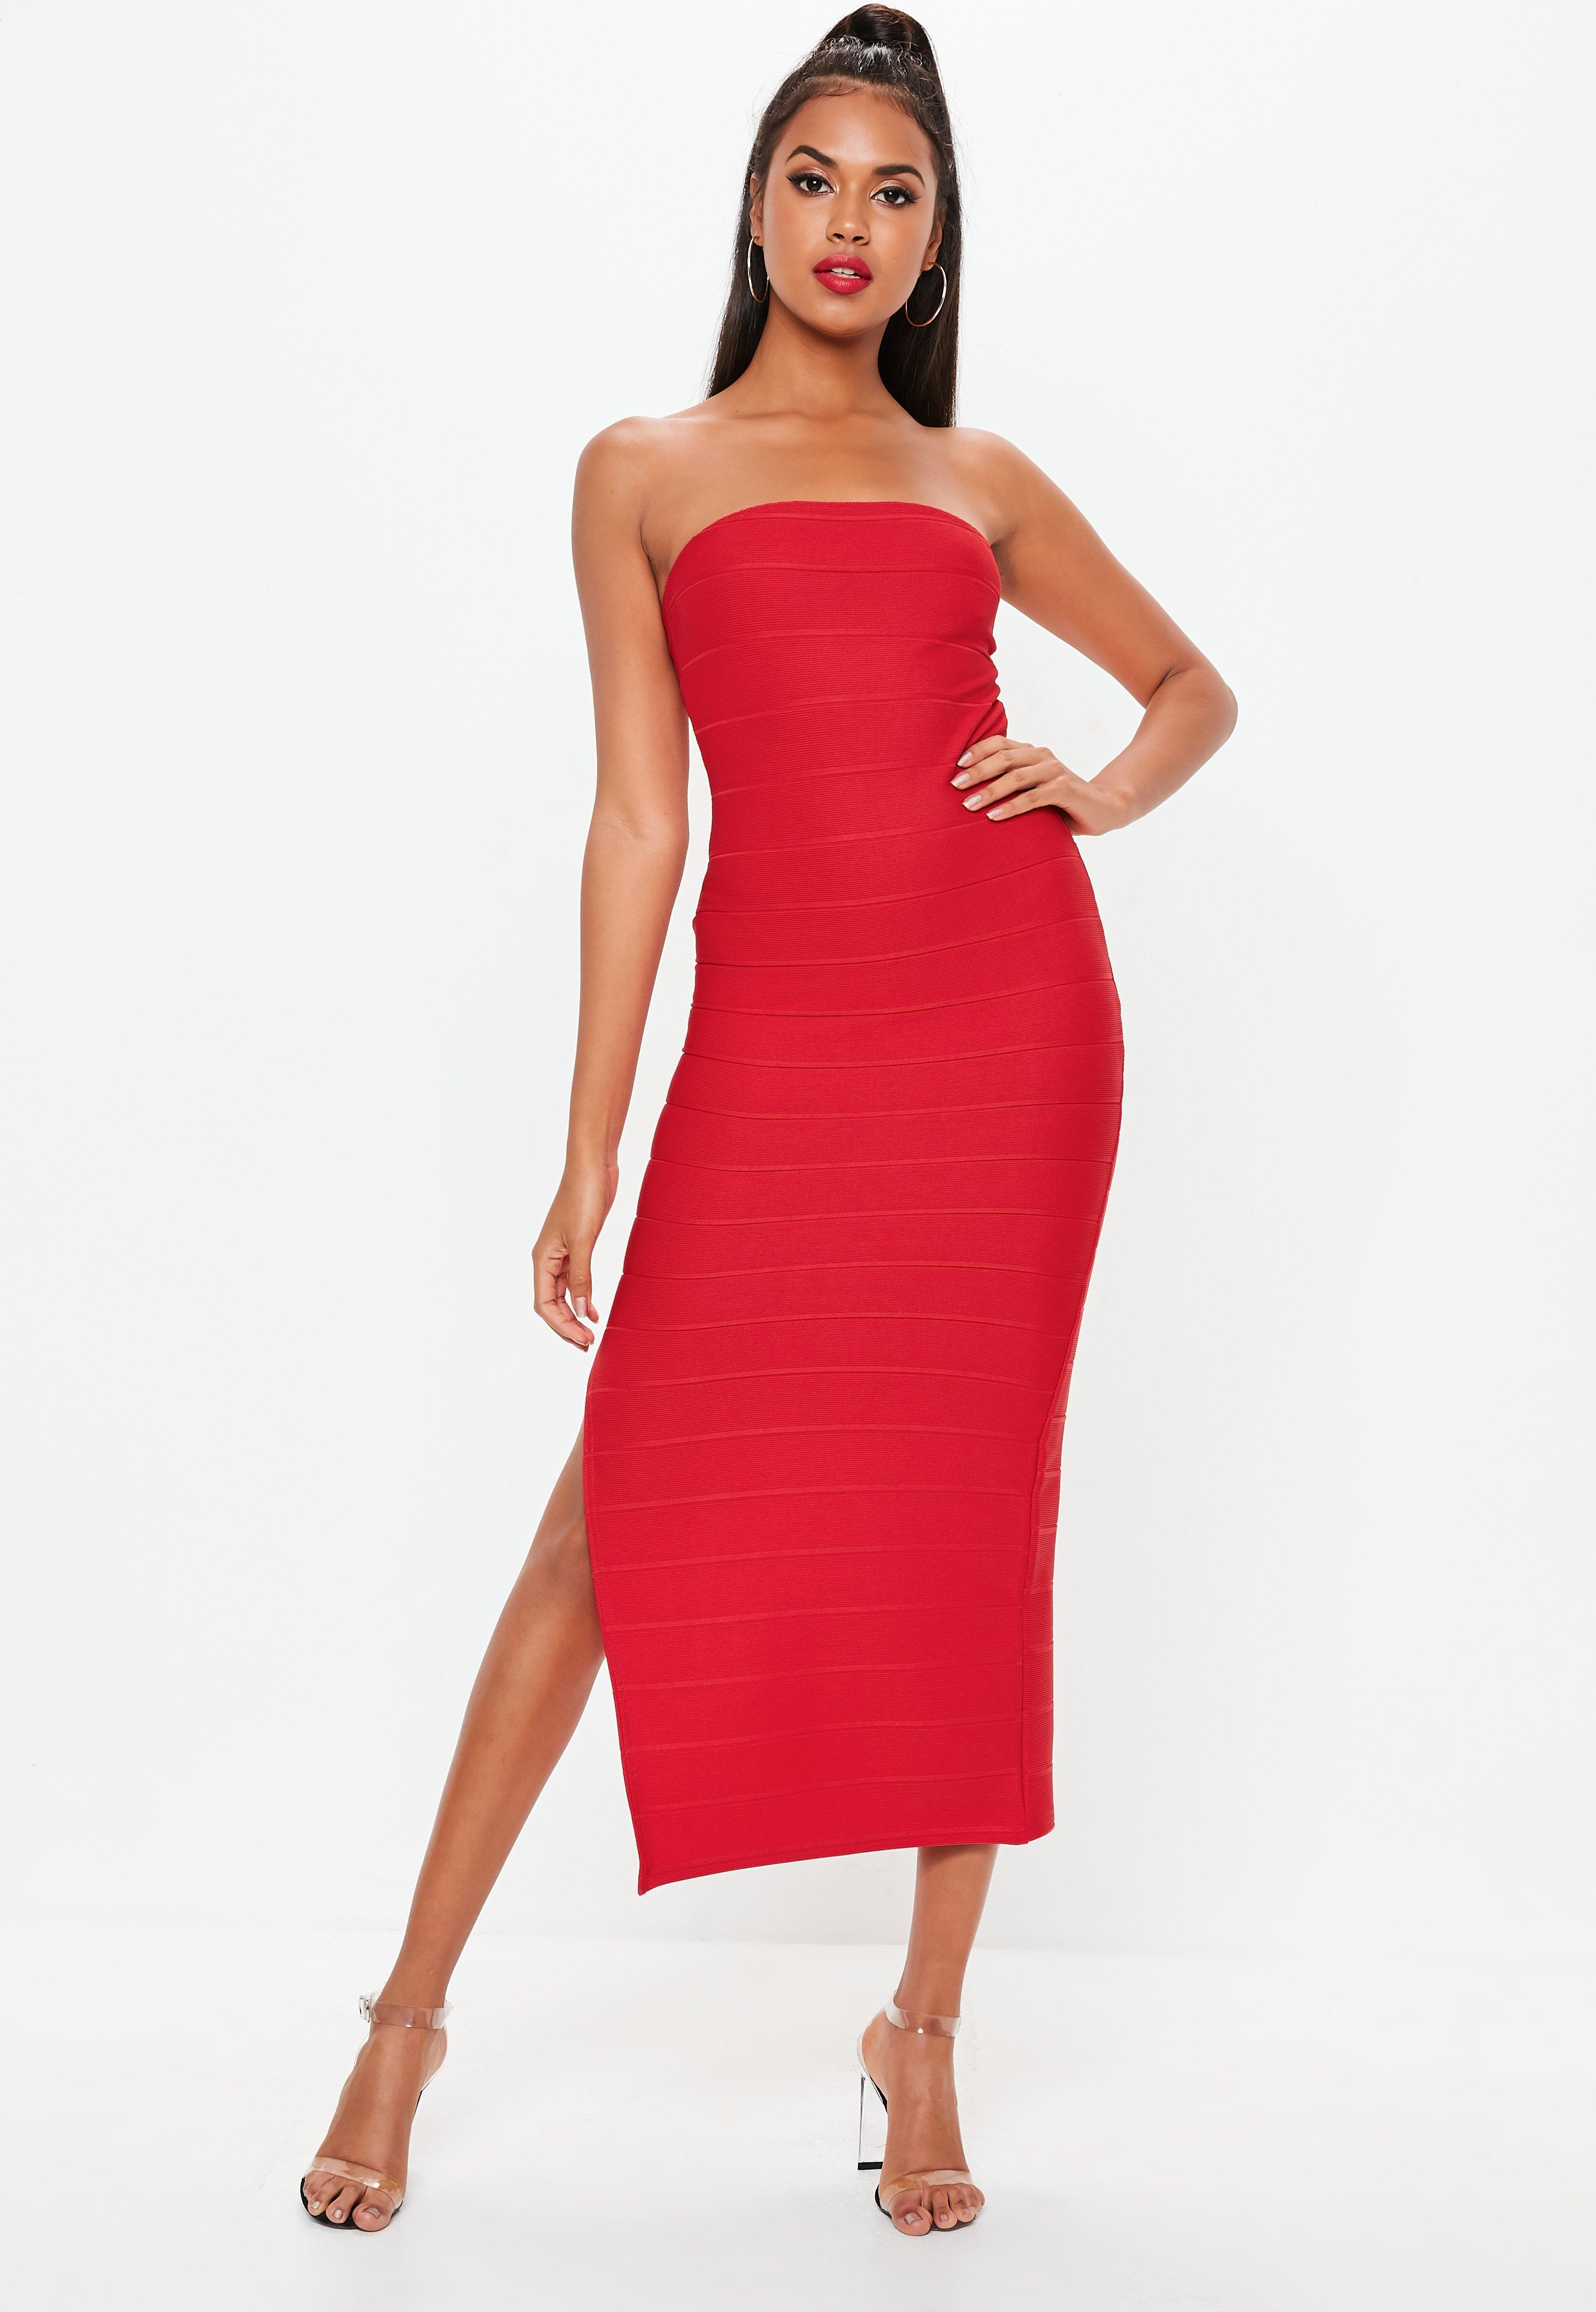 Missguided Red Bandage Bandeau Maxi Dress in Red - Lyst e3f78d88a